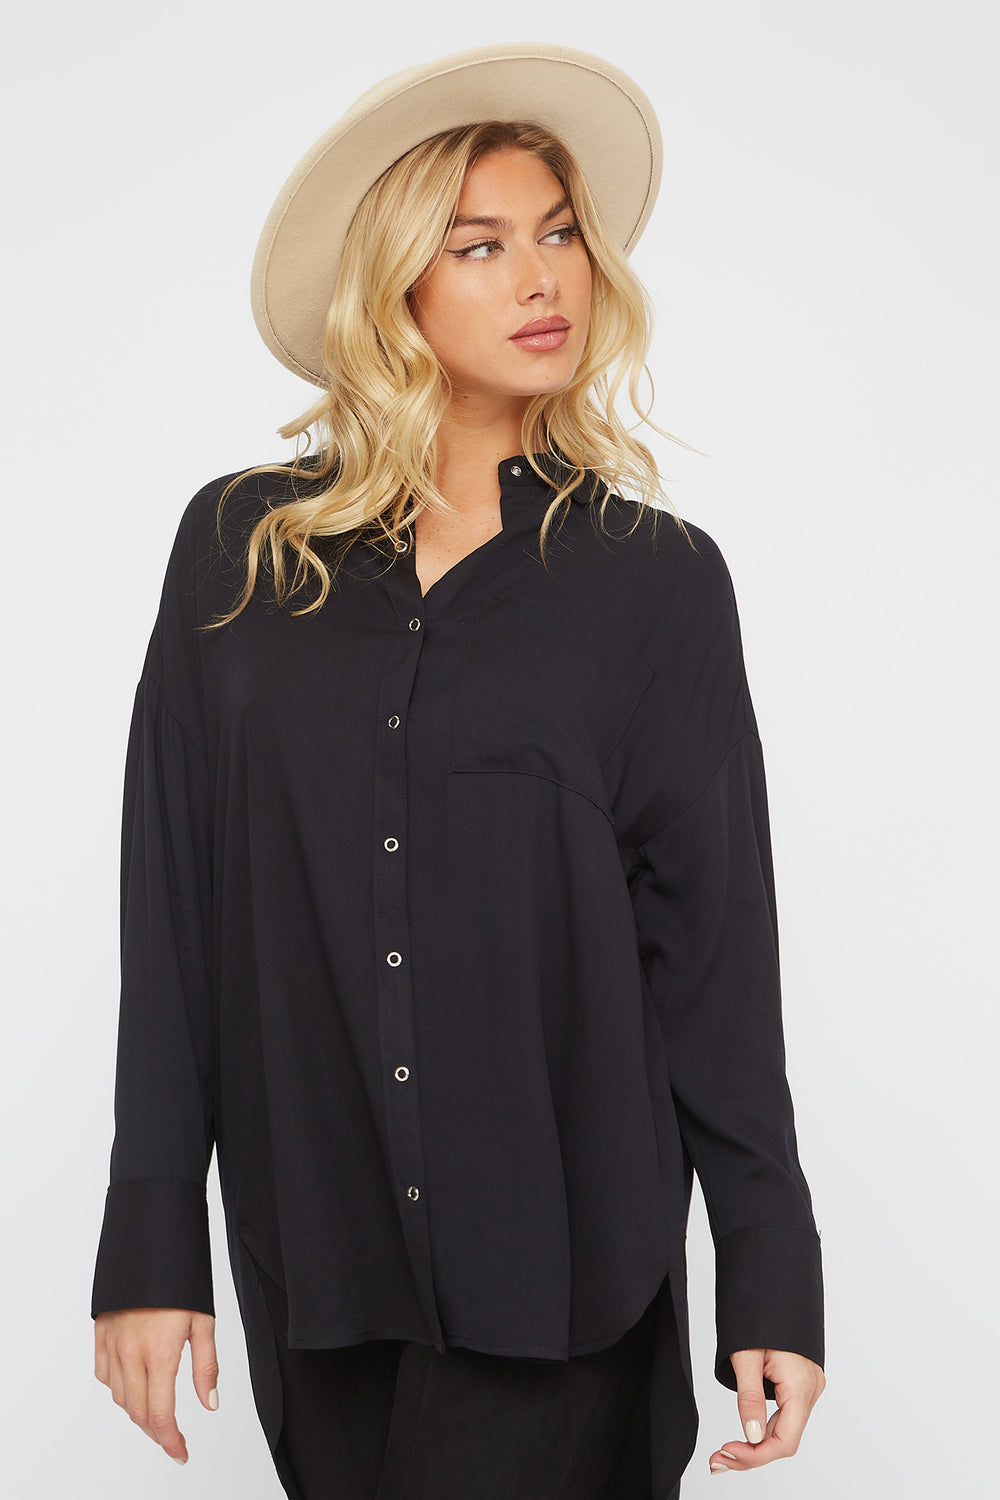 Oversized Button-Up Long Sleeve Shirt Black